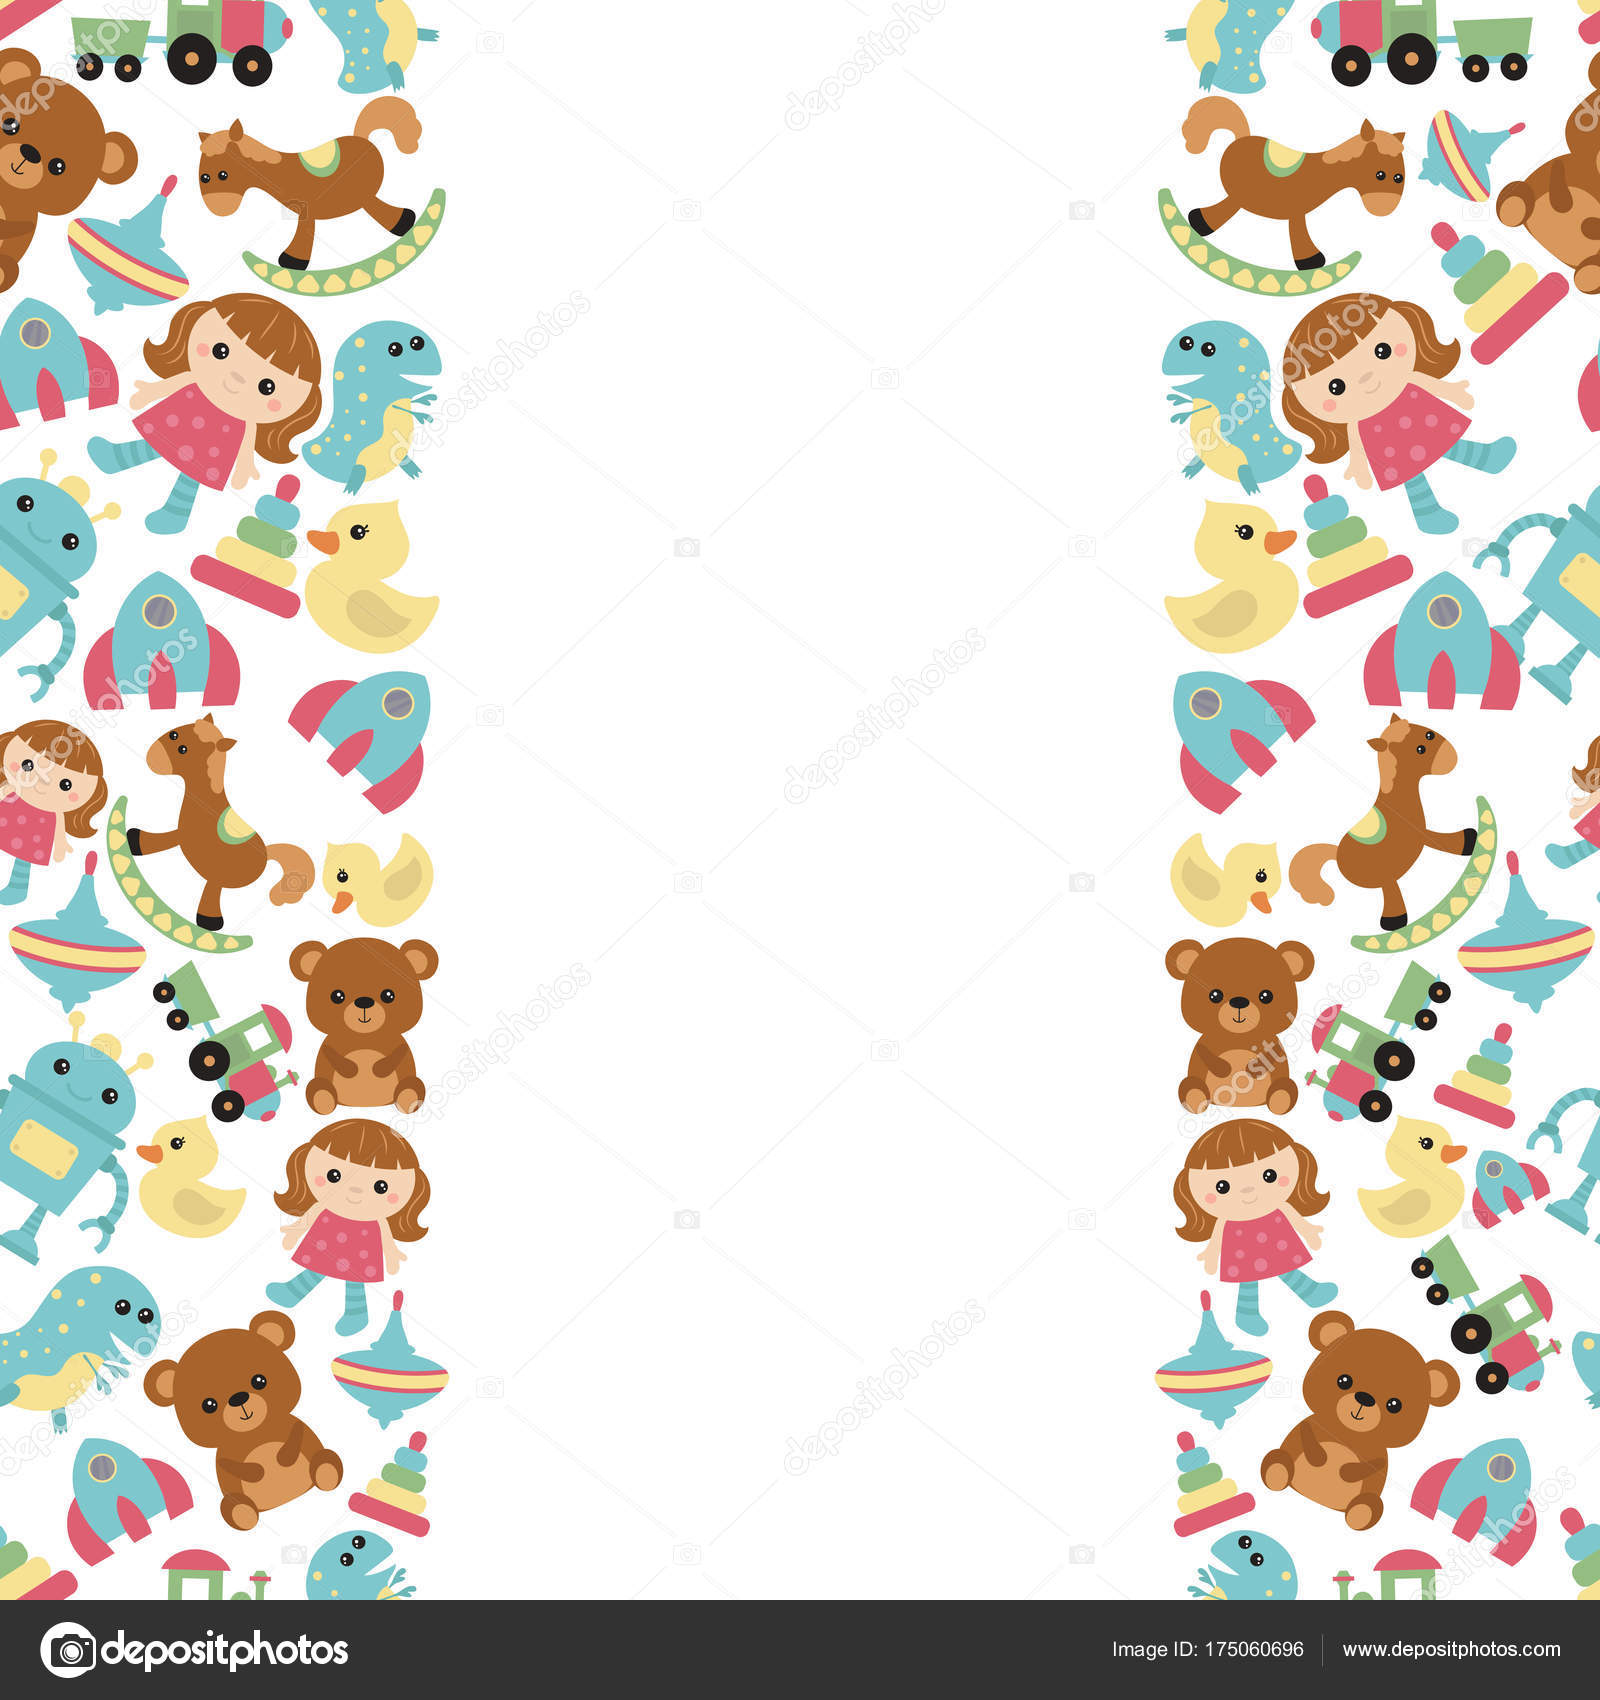 Background With Children Toys Stock Vector C Ninamunha 175060696